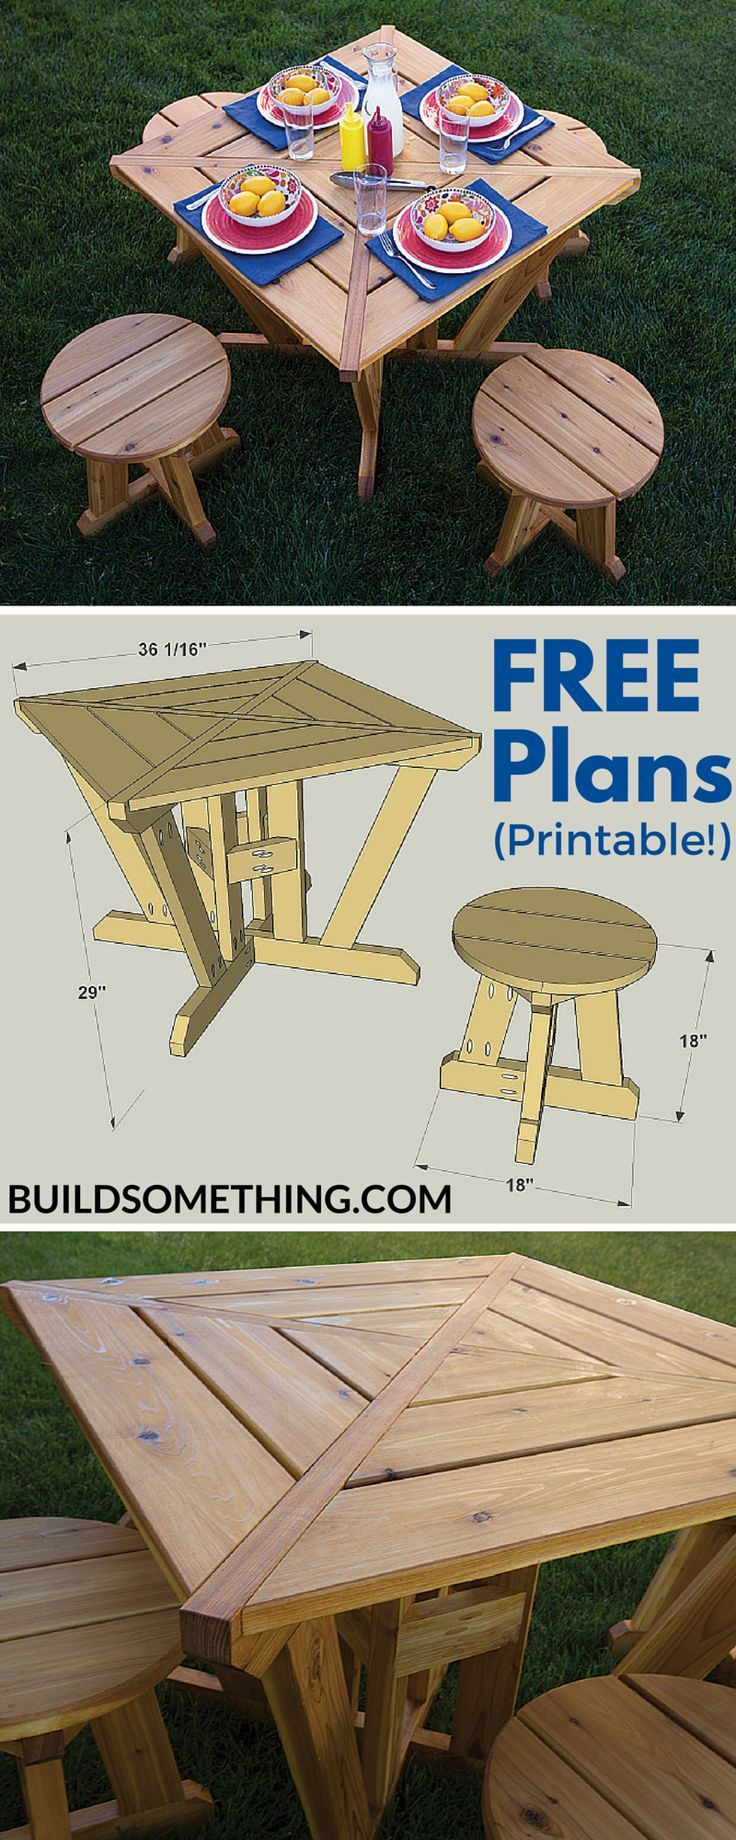 Here's a different twist on the traditional picnic table. It's perfect for smaller spaces or if you don't need to seat more than four people. The table and stools both have a unique look that you won't find in stores, and they're made from cedar, which means they'll last a long time outdoors. Get the free printable plans at http://buildsomething.com